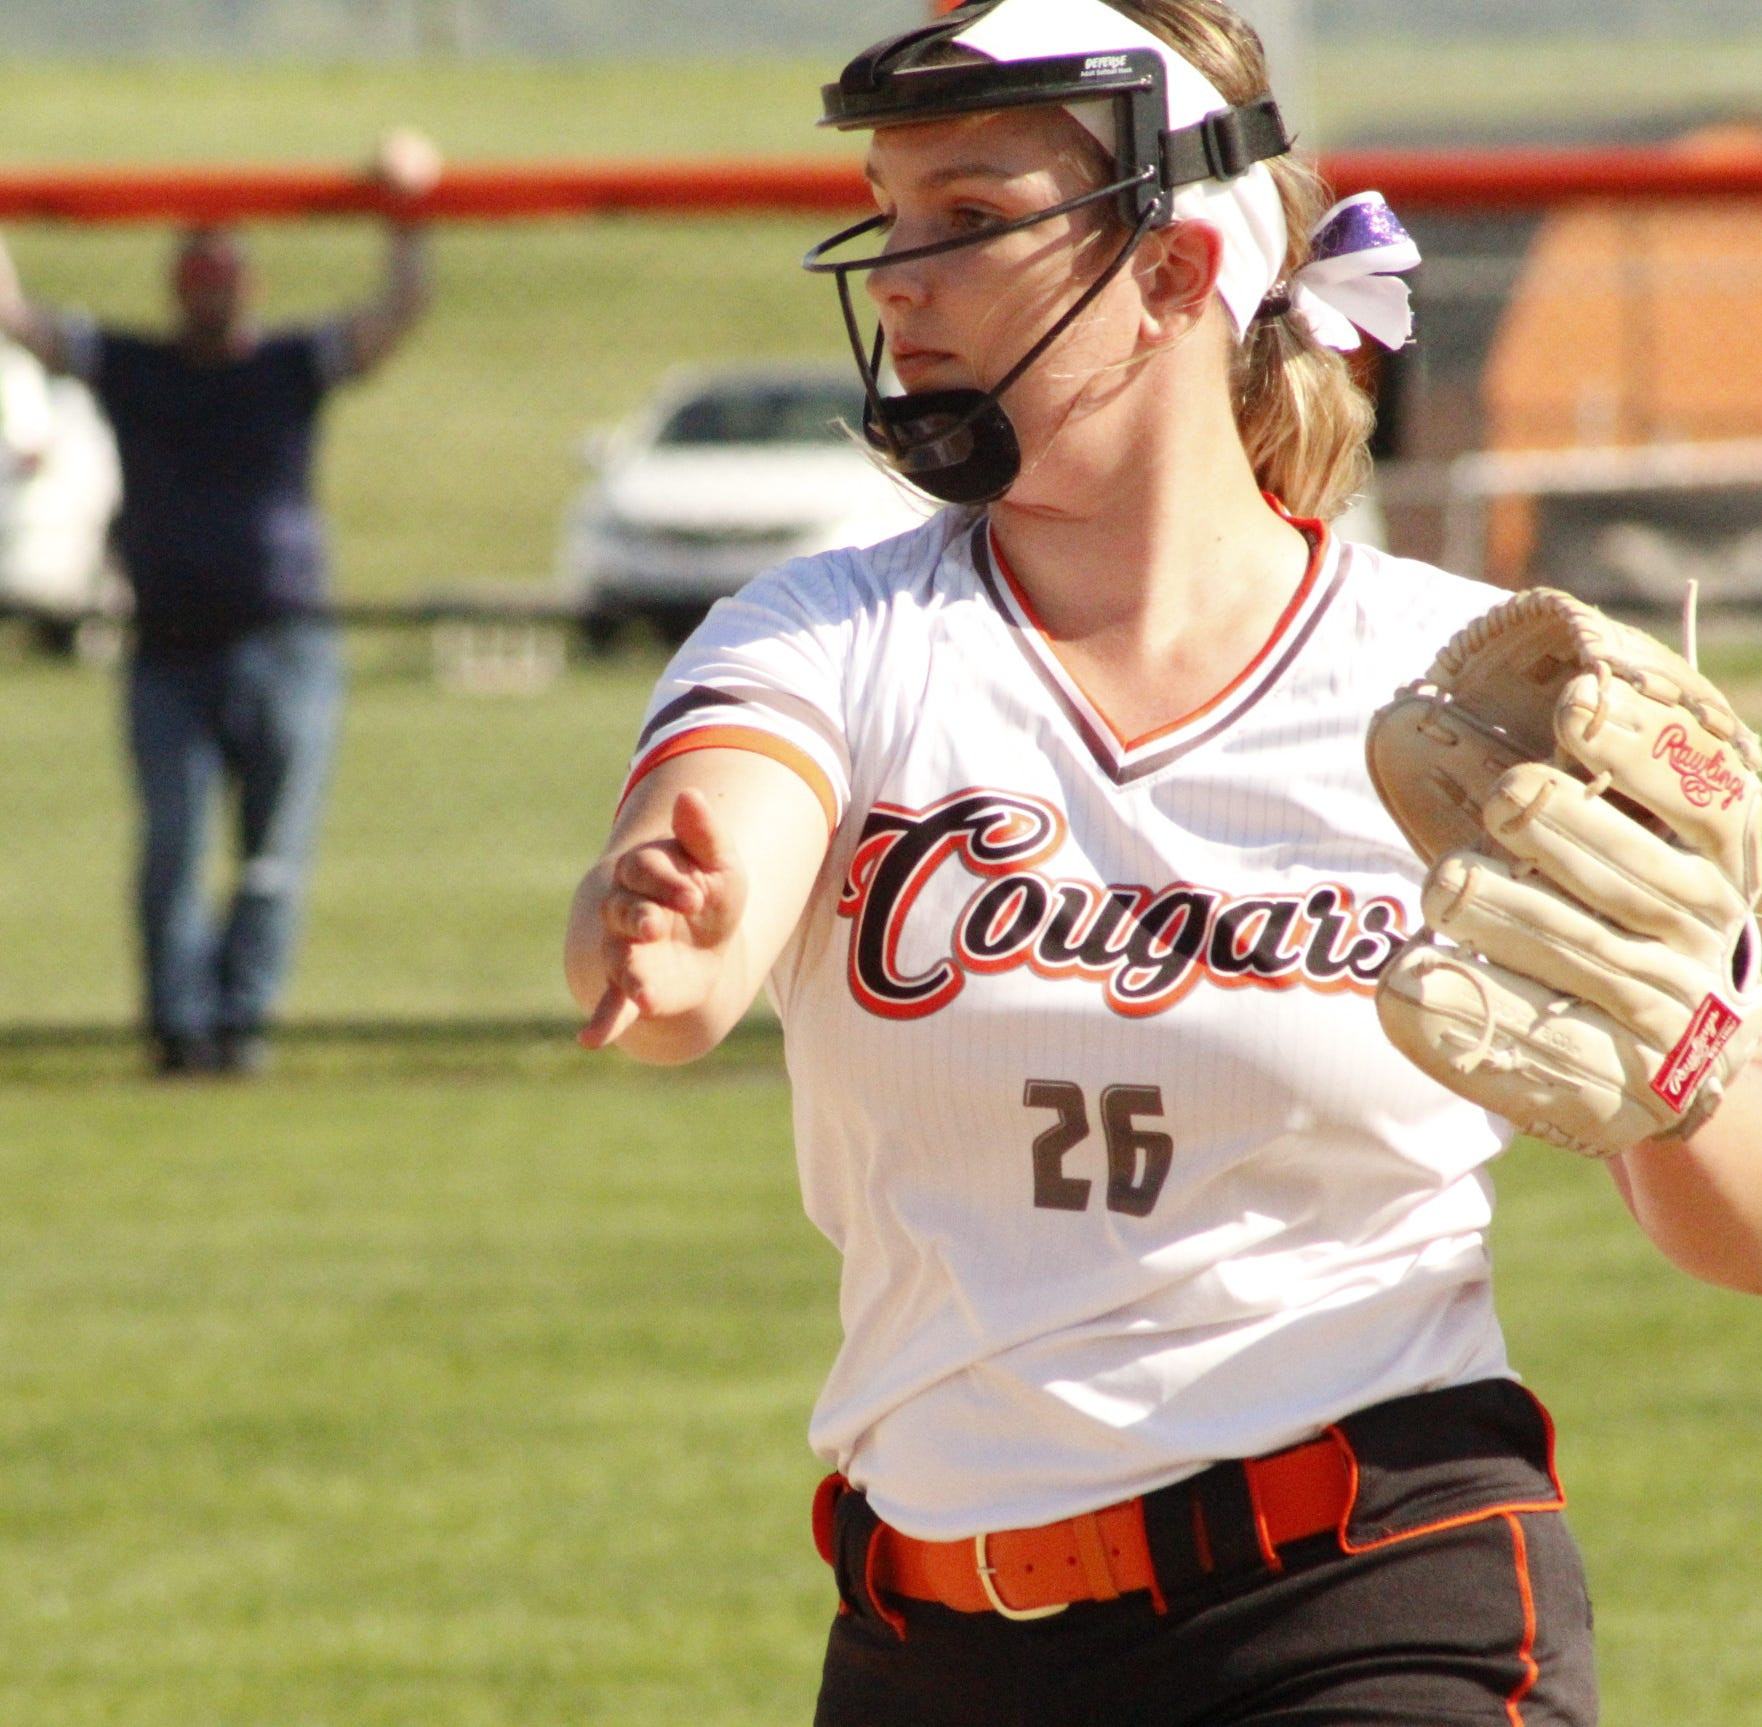 DISTRICT 3 ROUNDUP: A-C baseball walks off with win, Palmyra softball bows out in opener